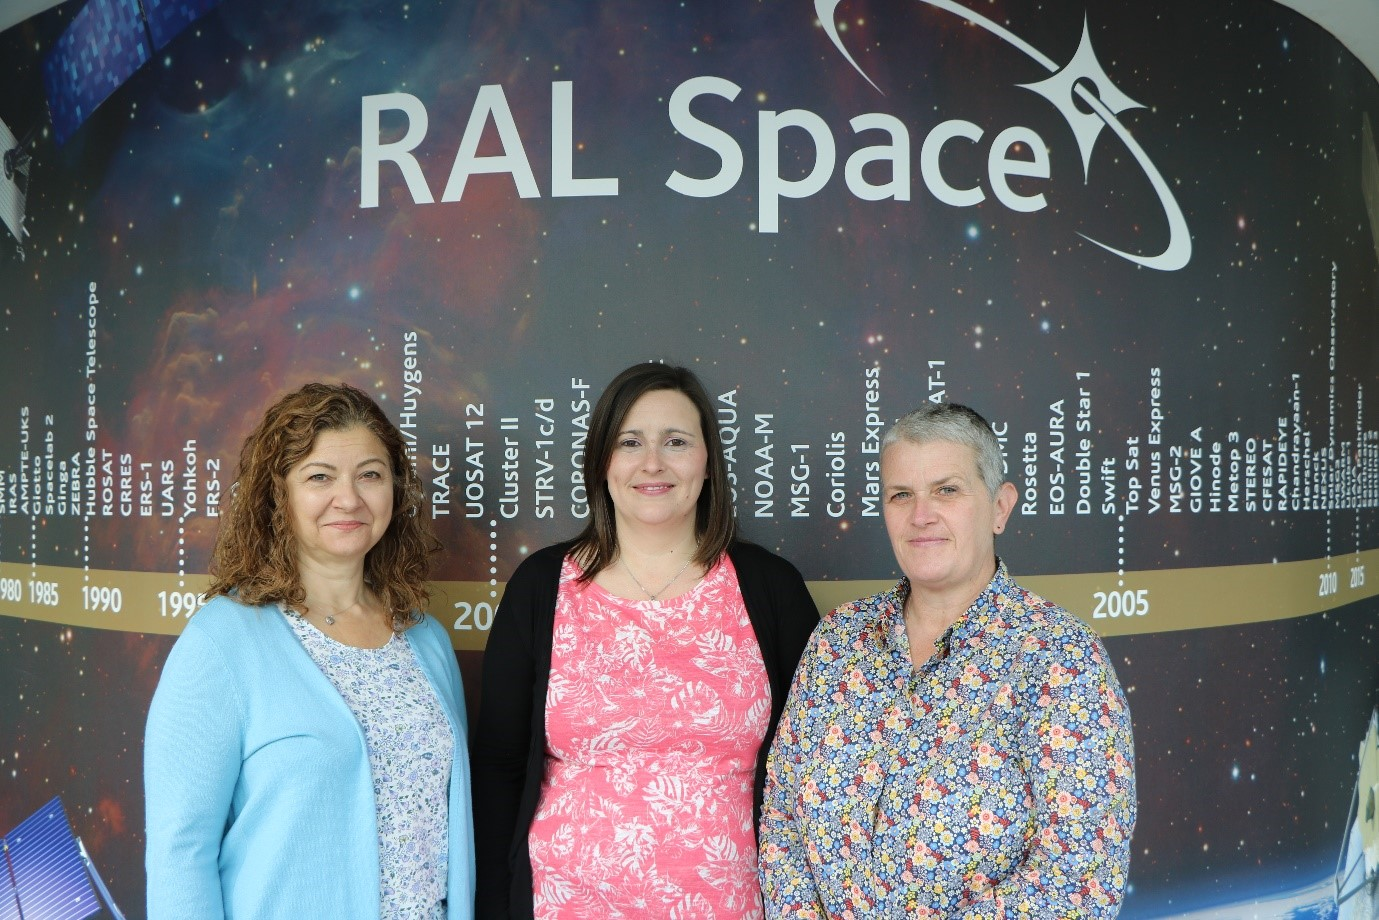 Kim, Claire and Angela – the Space Crafters